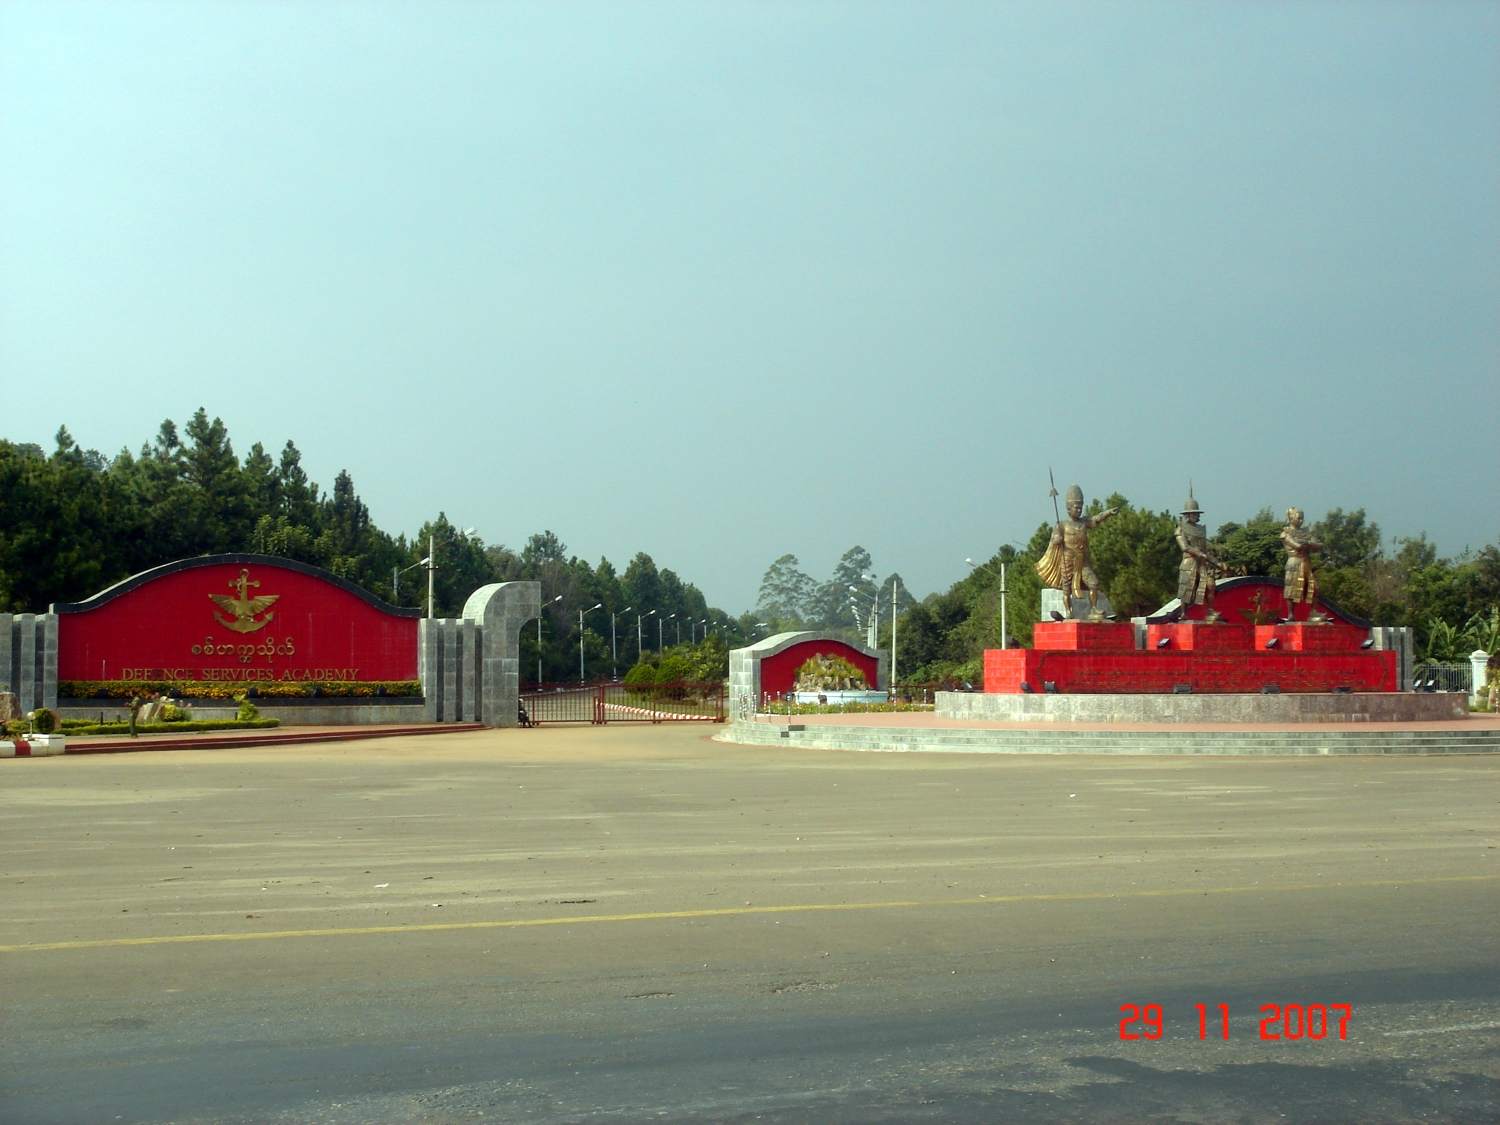 Pyin Oo Lwin is home to the Defence Services Academy, pictured here, where the military's top brass are trained. Junta leader Senior General Min Aung Hlaing is a graduate. (Wikipedia Commons)